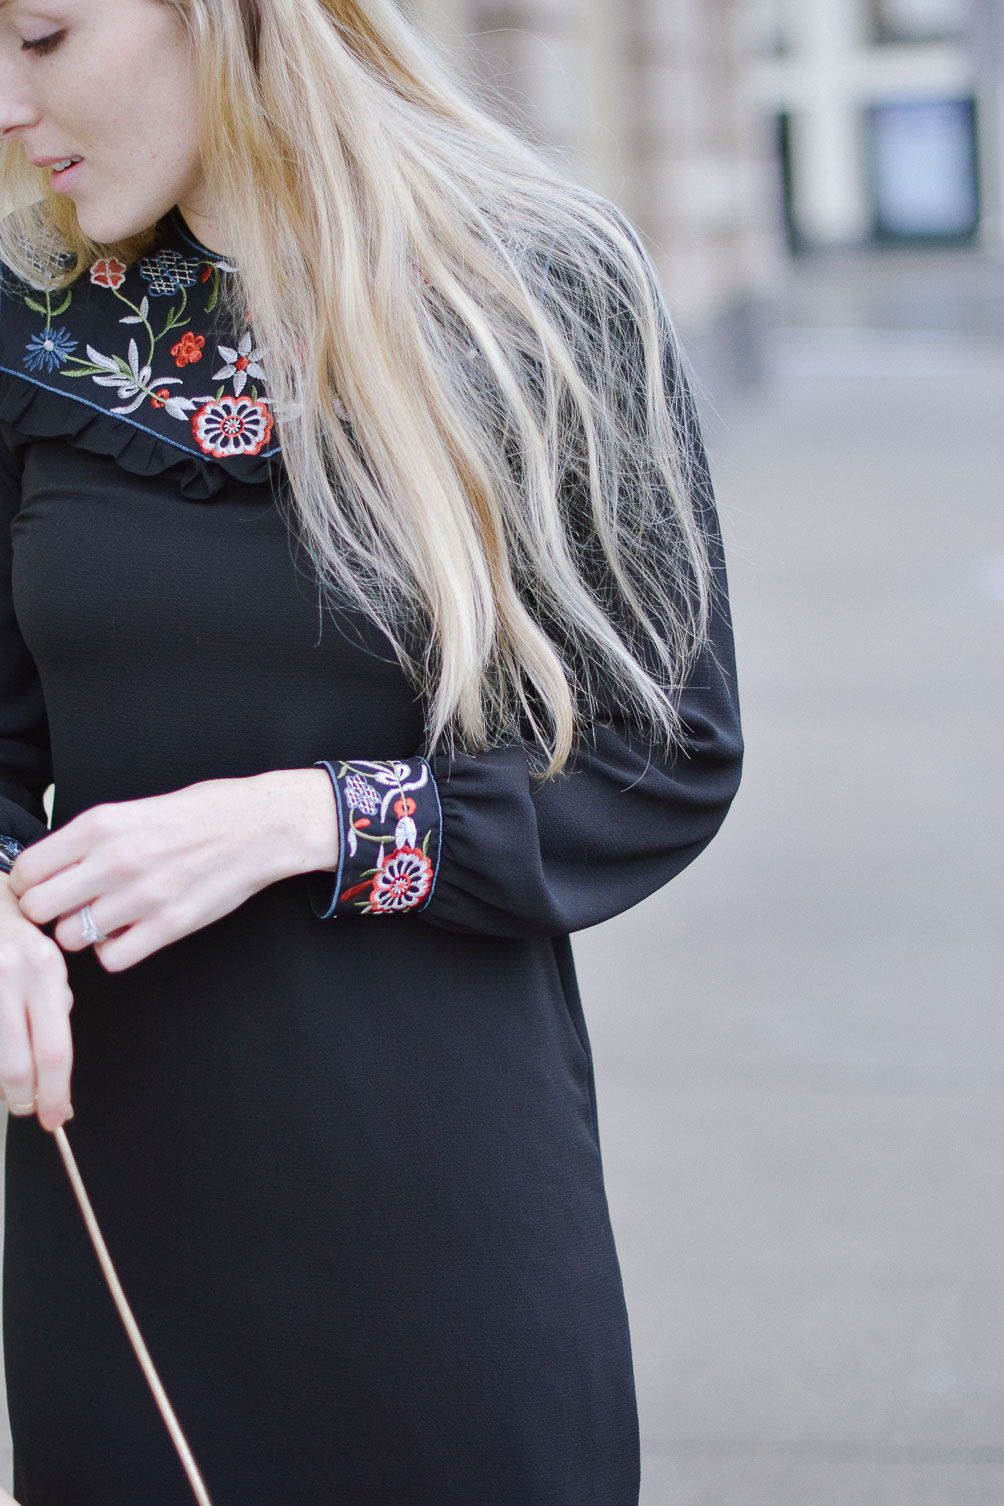 styling this New Year's Even outfit inspiration with embroidered shift dress